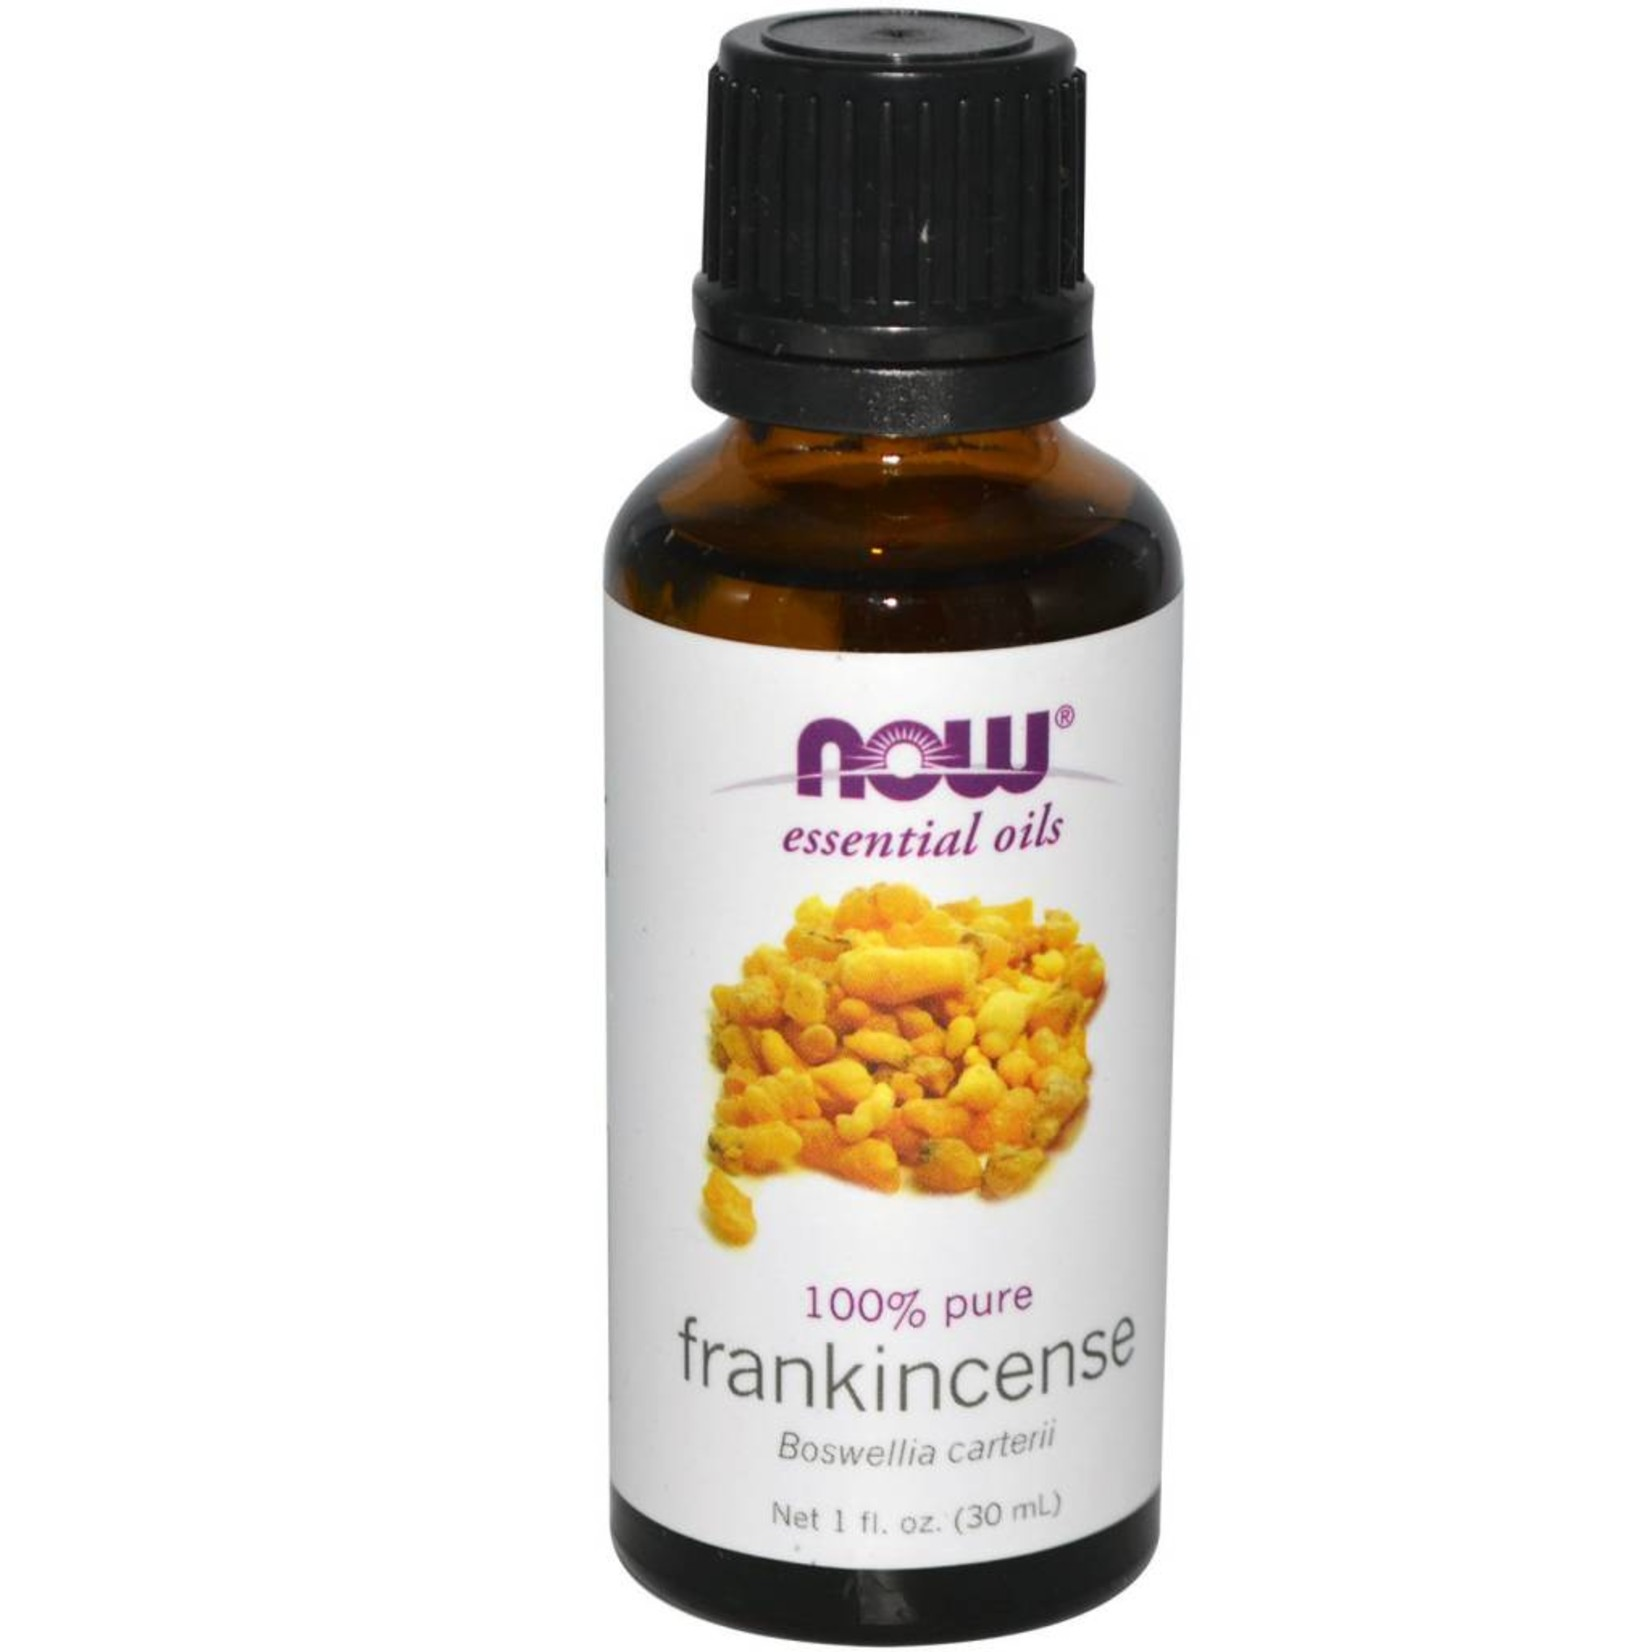 NOW NOW Frankincense Oil Pure 30mL